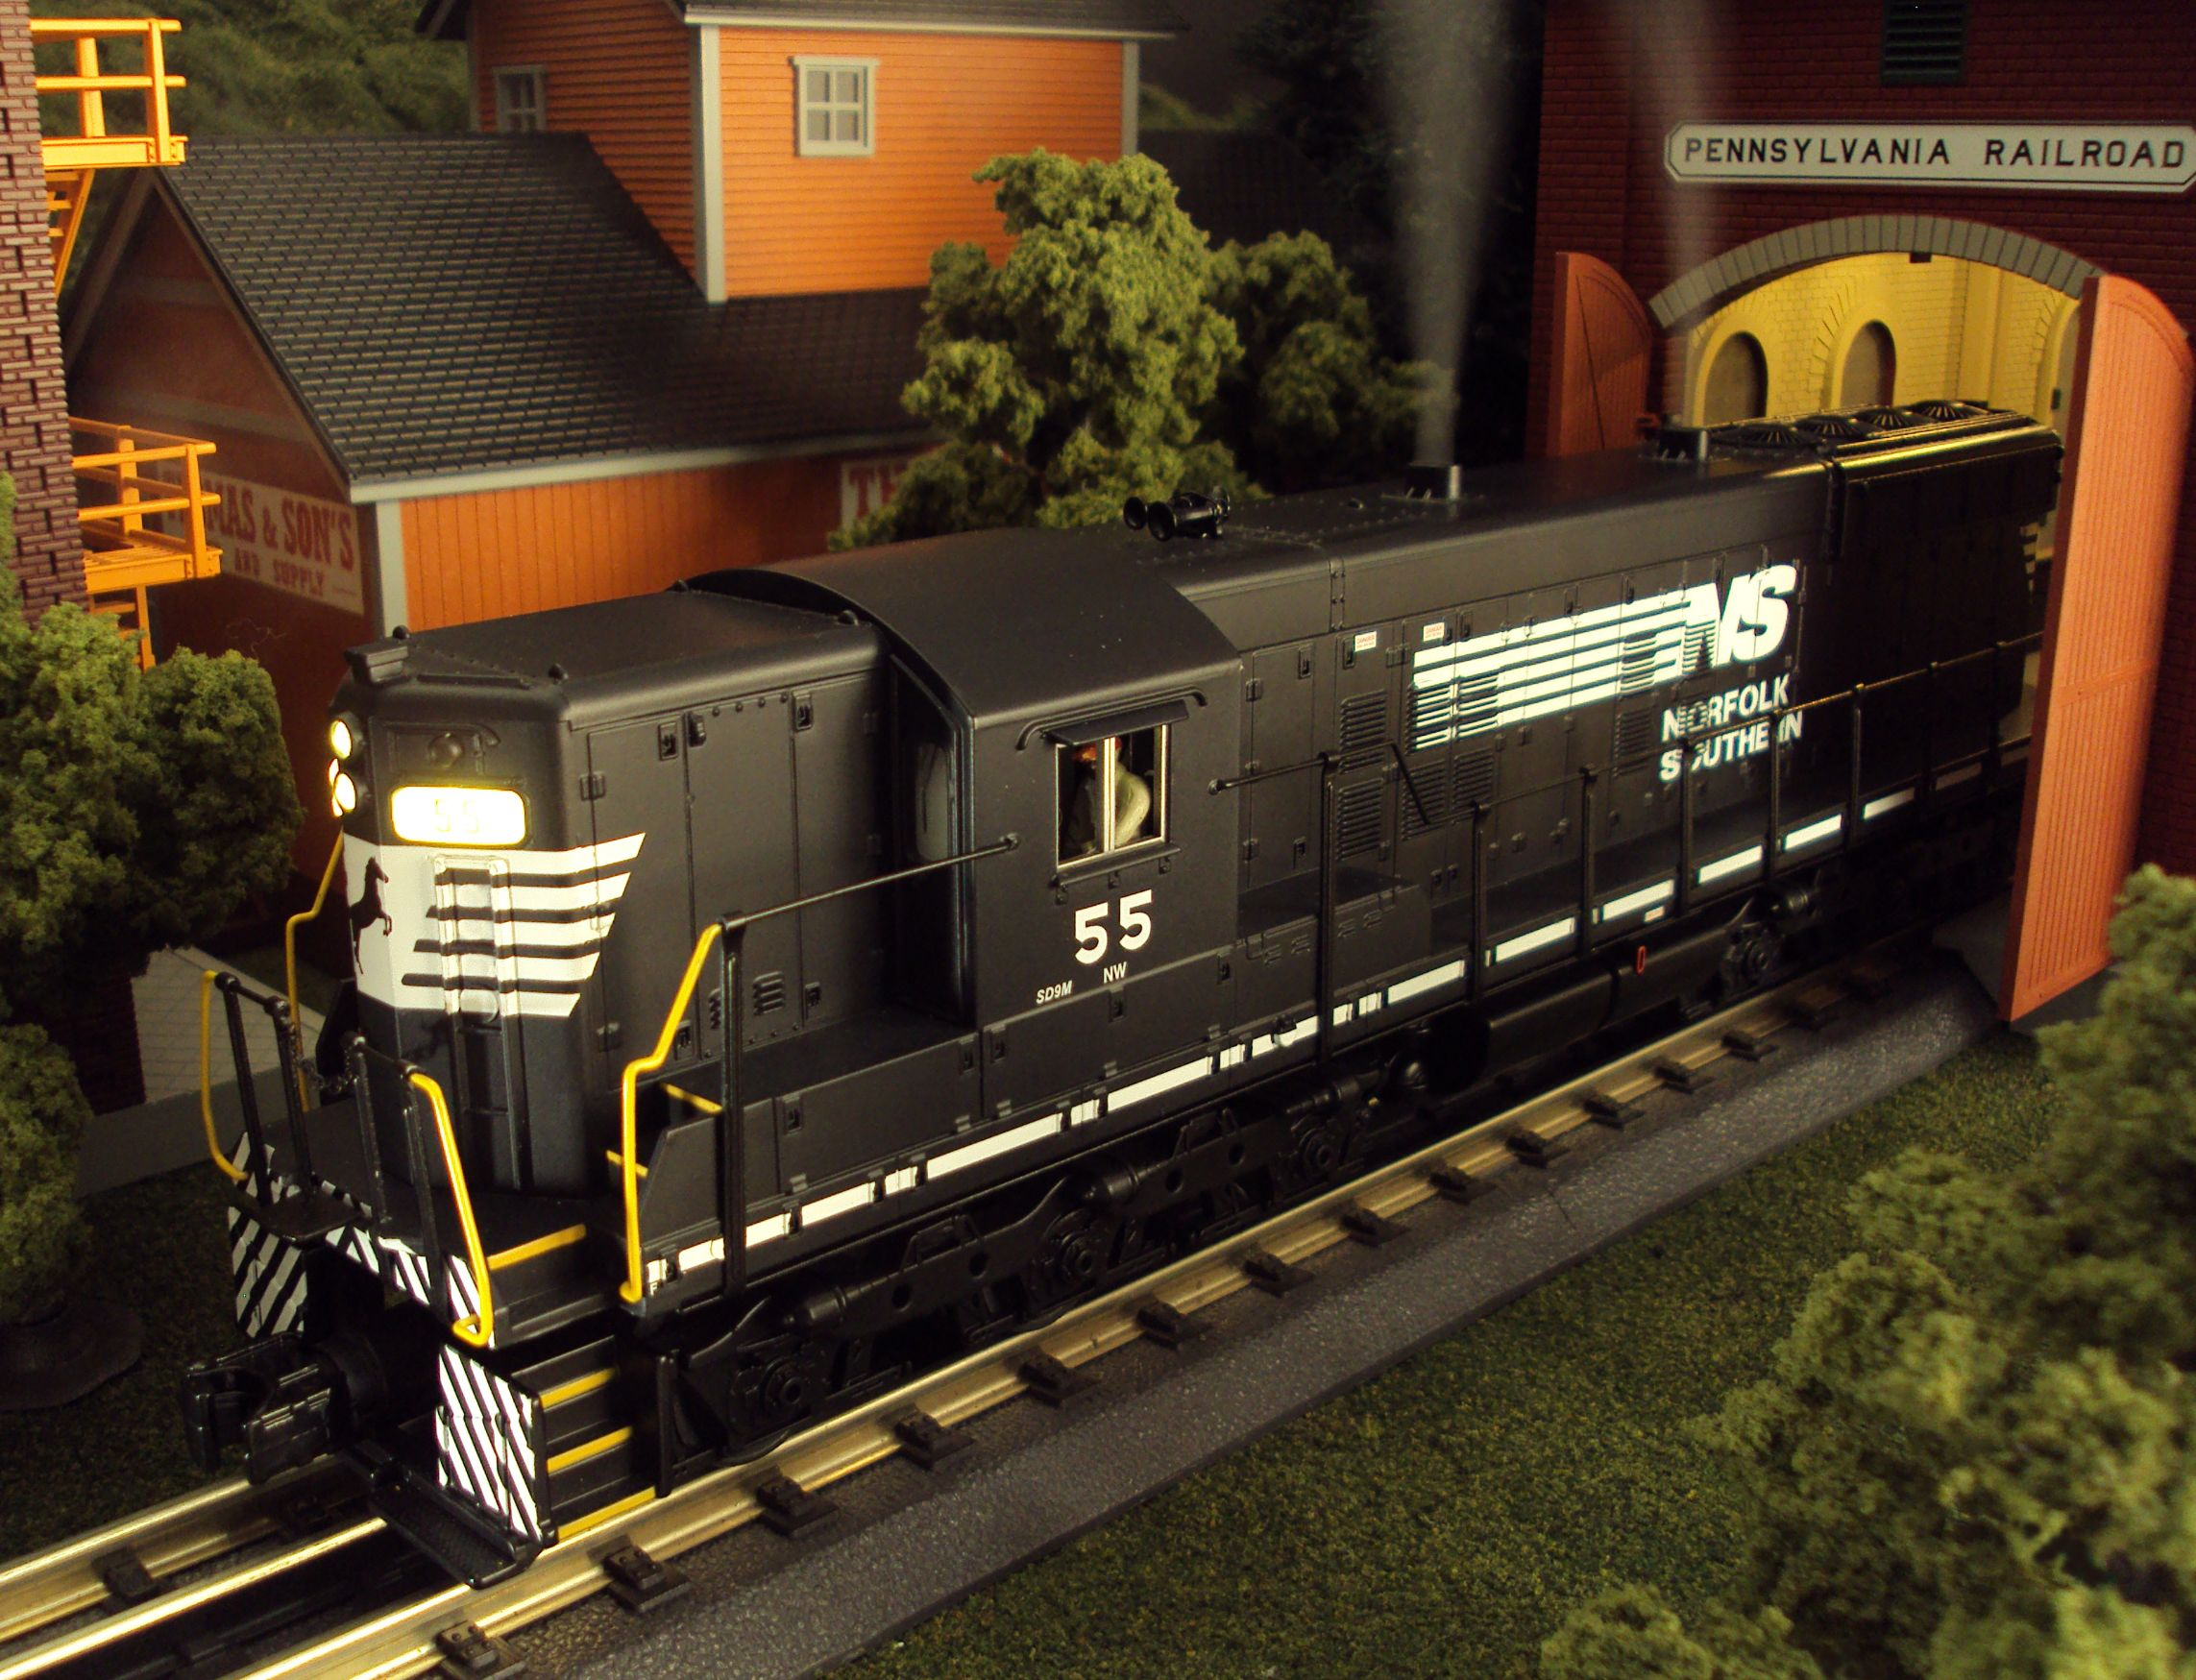 MTH RailKing Scale Norfolk Southern SD9 Diesel Engine 30-20197-1 February 2015